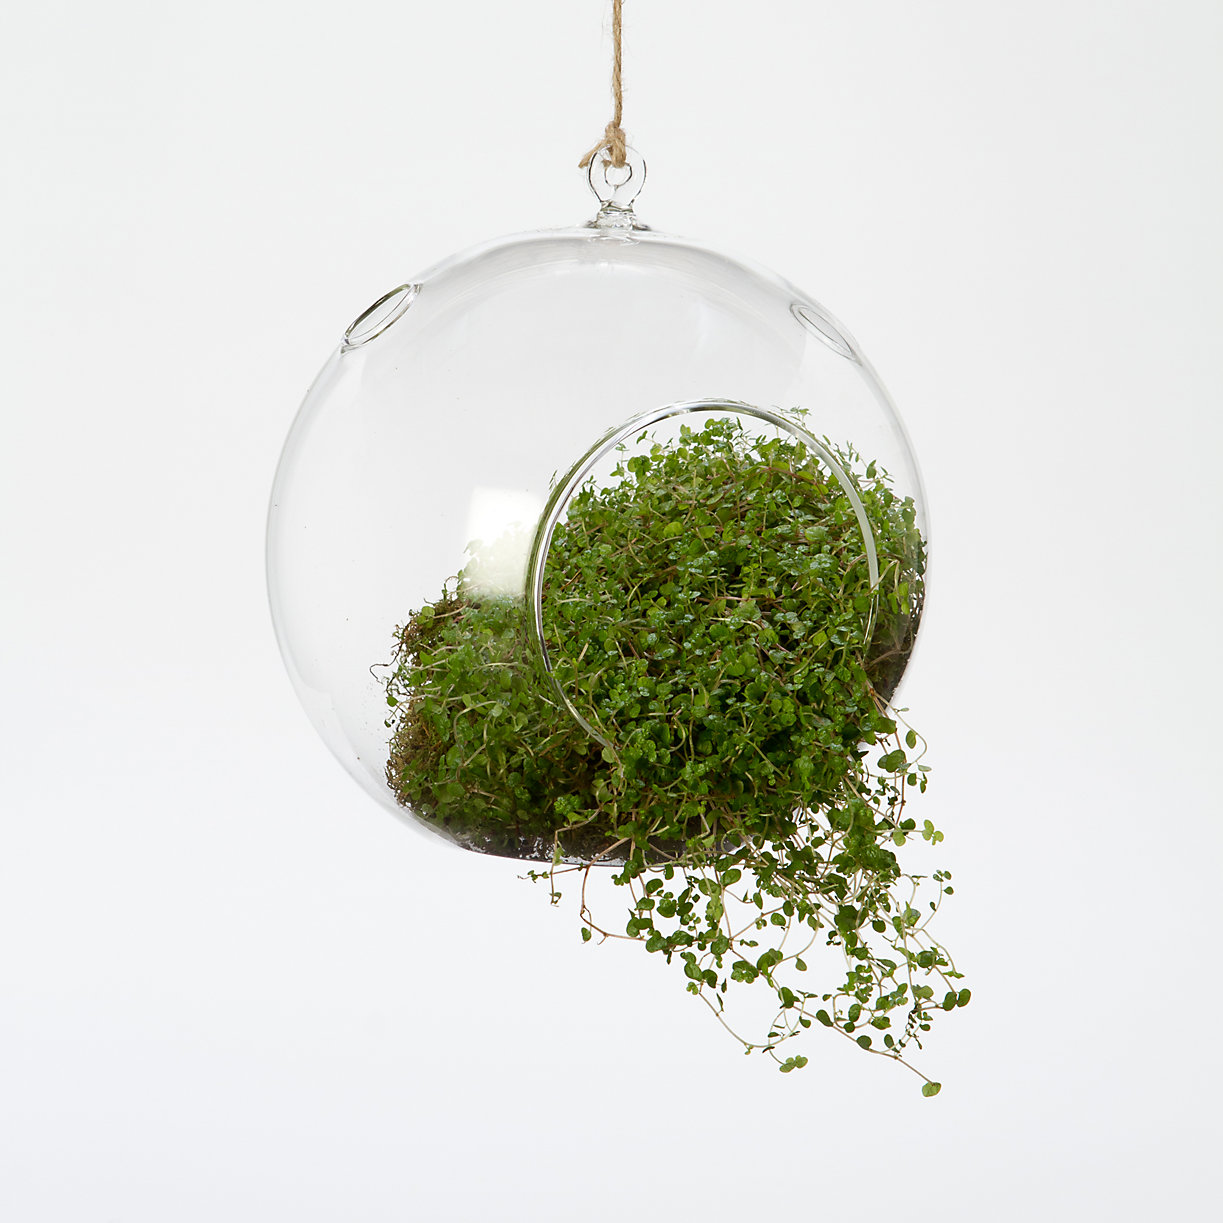 Hanging Bubble Terrarium Terrain : 28527240100azoom2 from www.shopterrain.com size 1223 x 1223 jpeg 189kB